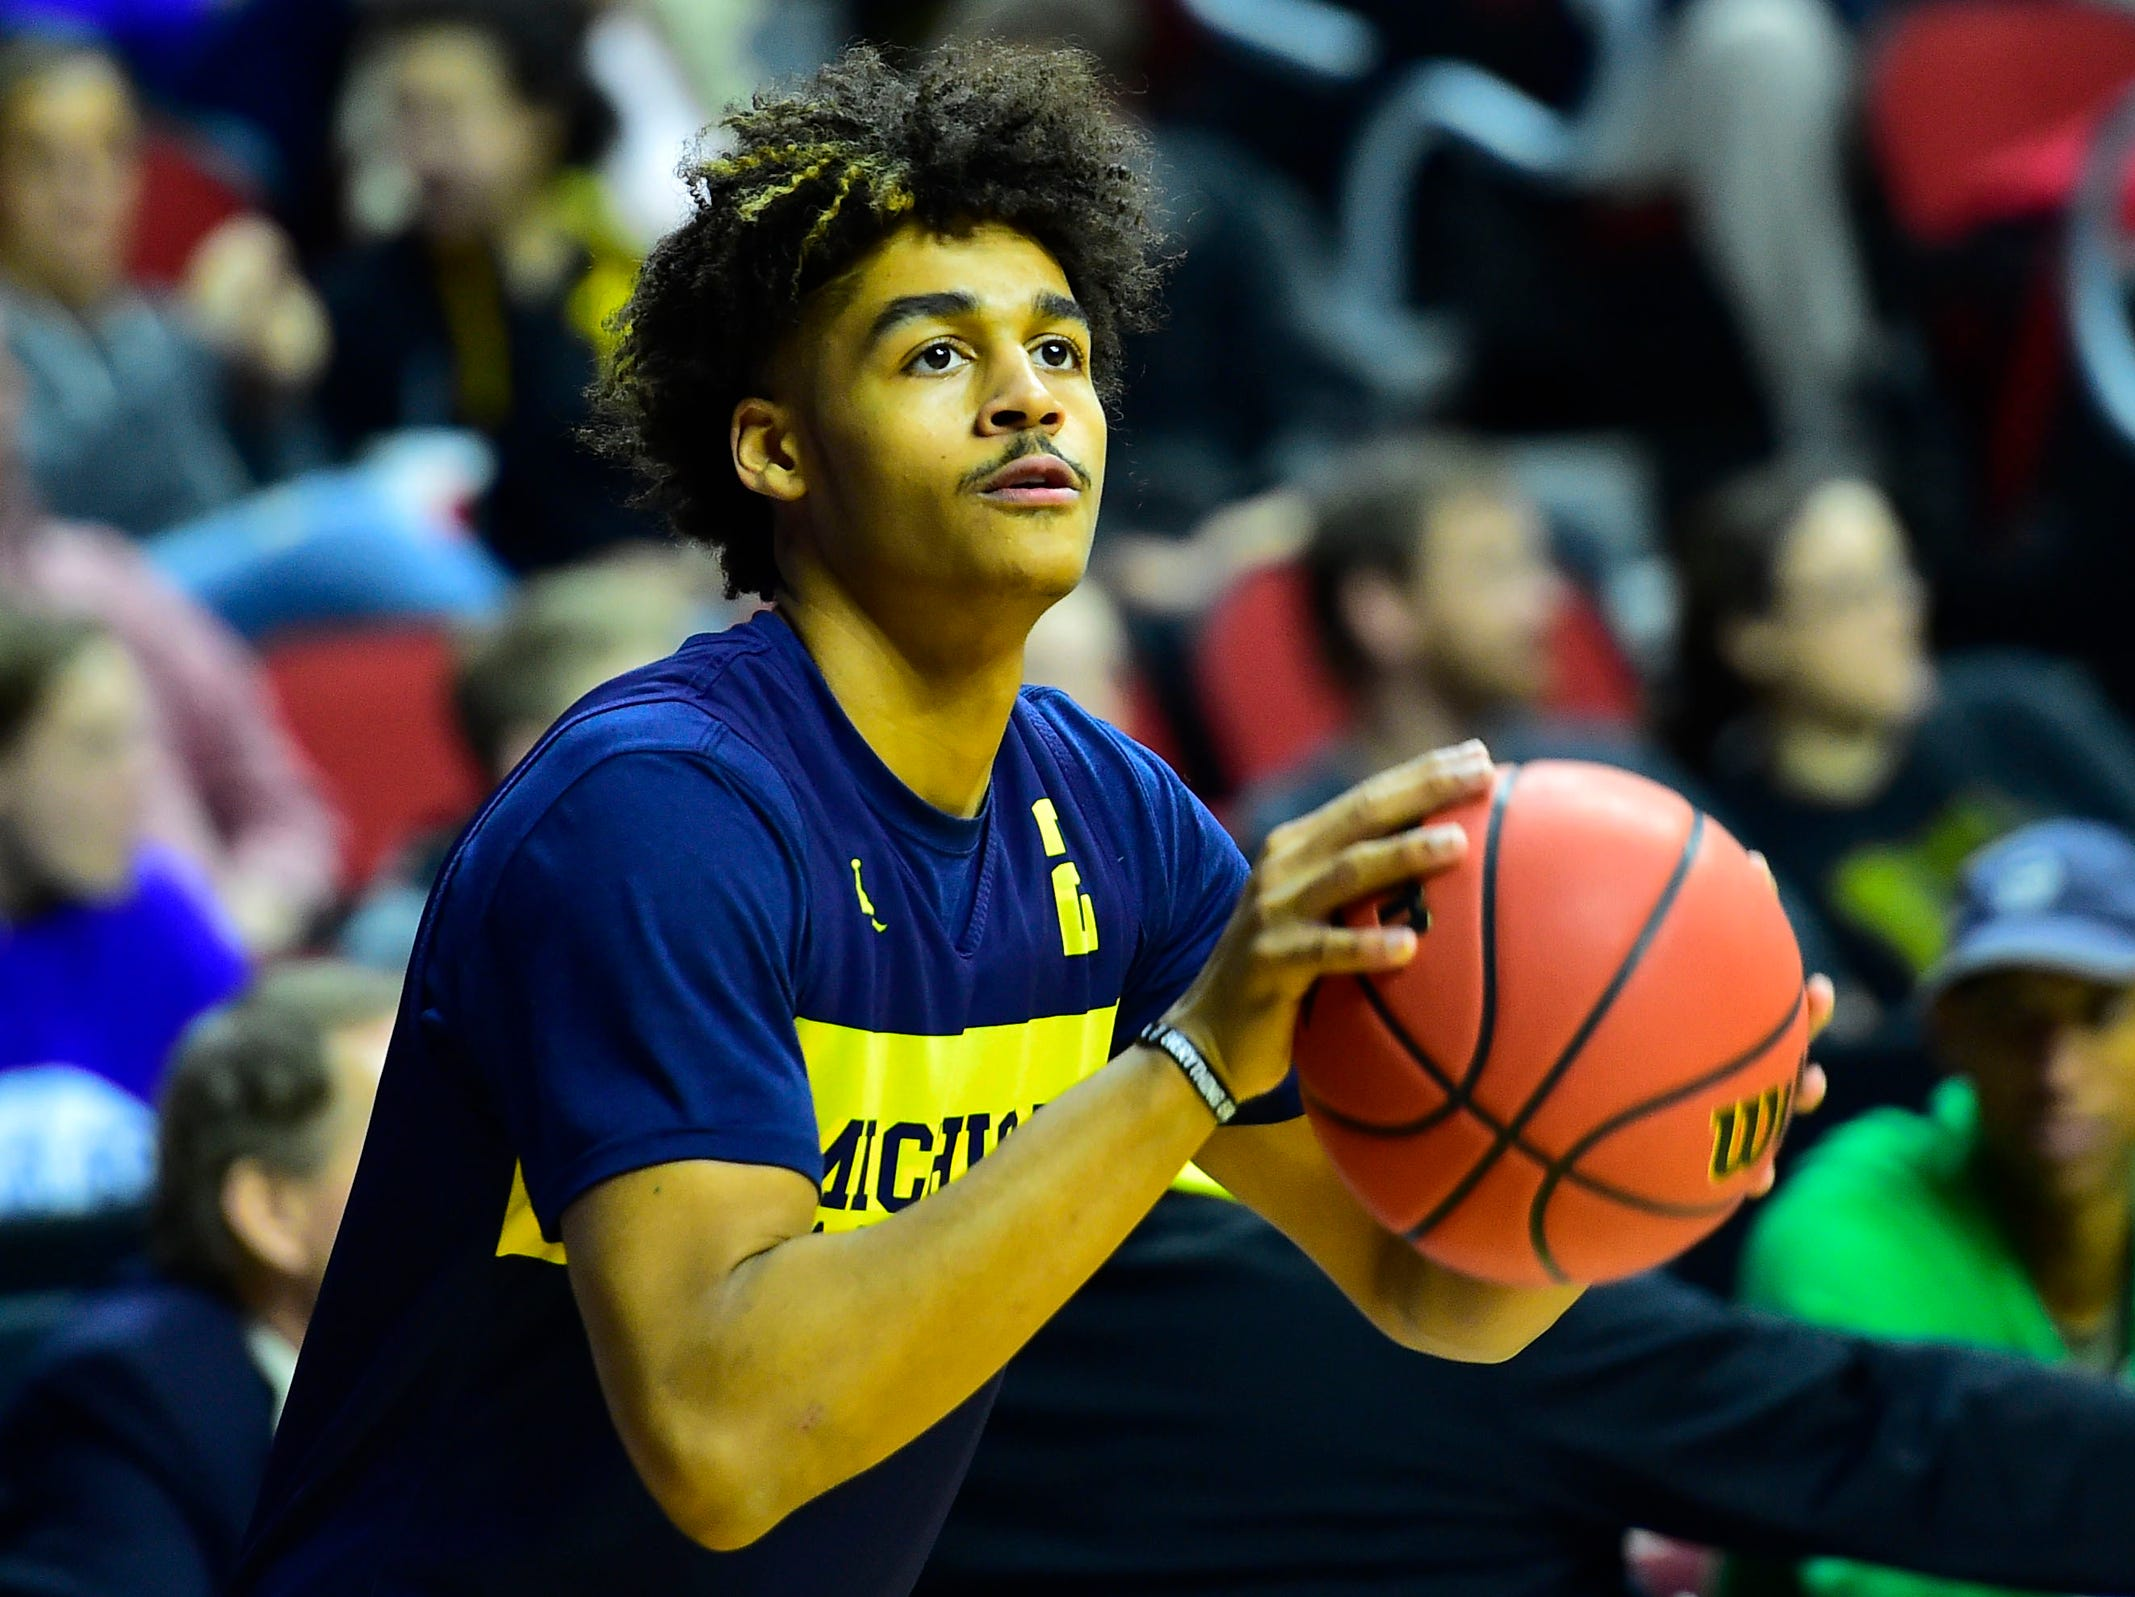 Mar 20, 2019; Des Moines, IA, USA; Michigan Wolverines guard Jordan Poole (2) shoots the ball during practice before the first round of the 2019 NCAA Tournament at Wells Fargo Arena. Mandatory Credit: Jeffrey Becker-USA TODAY Sports